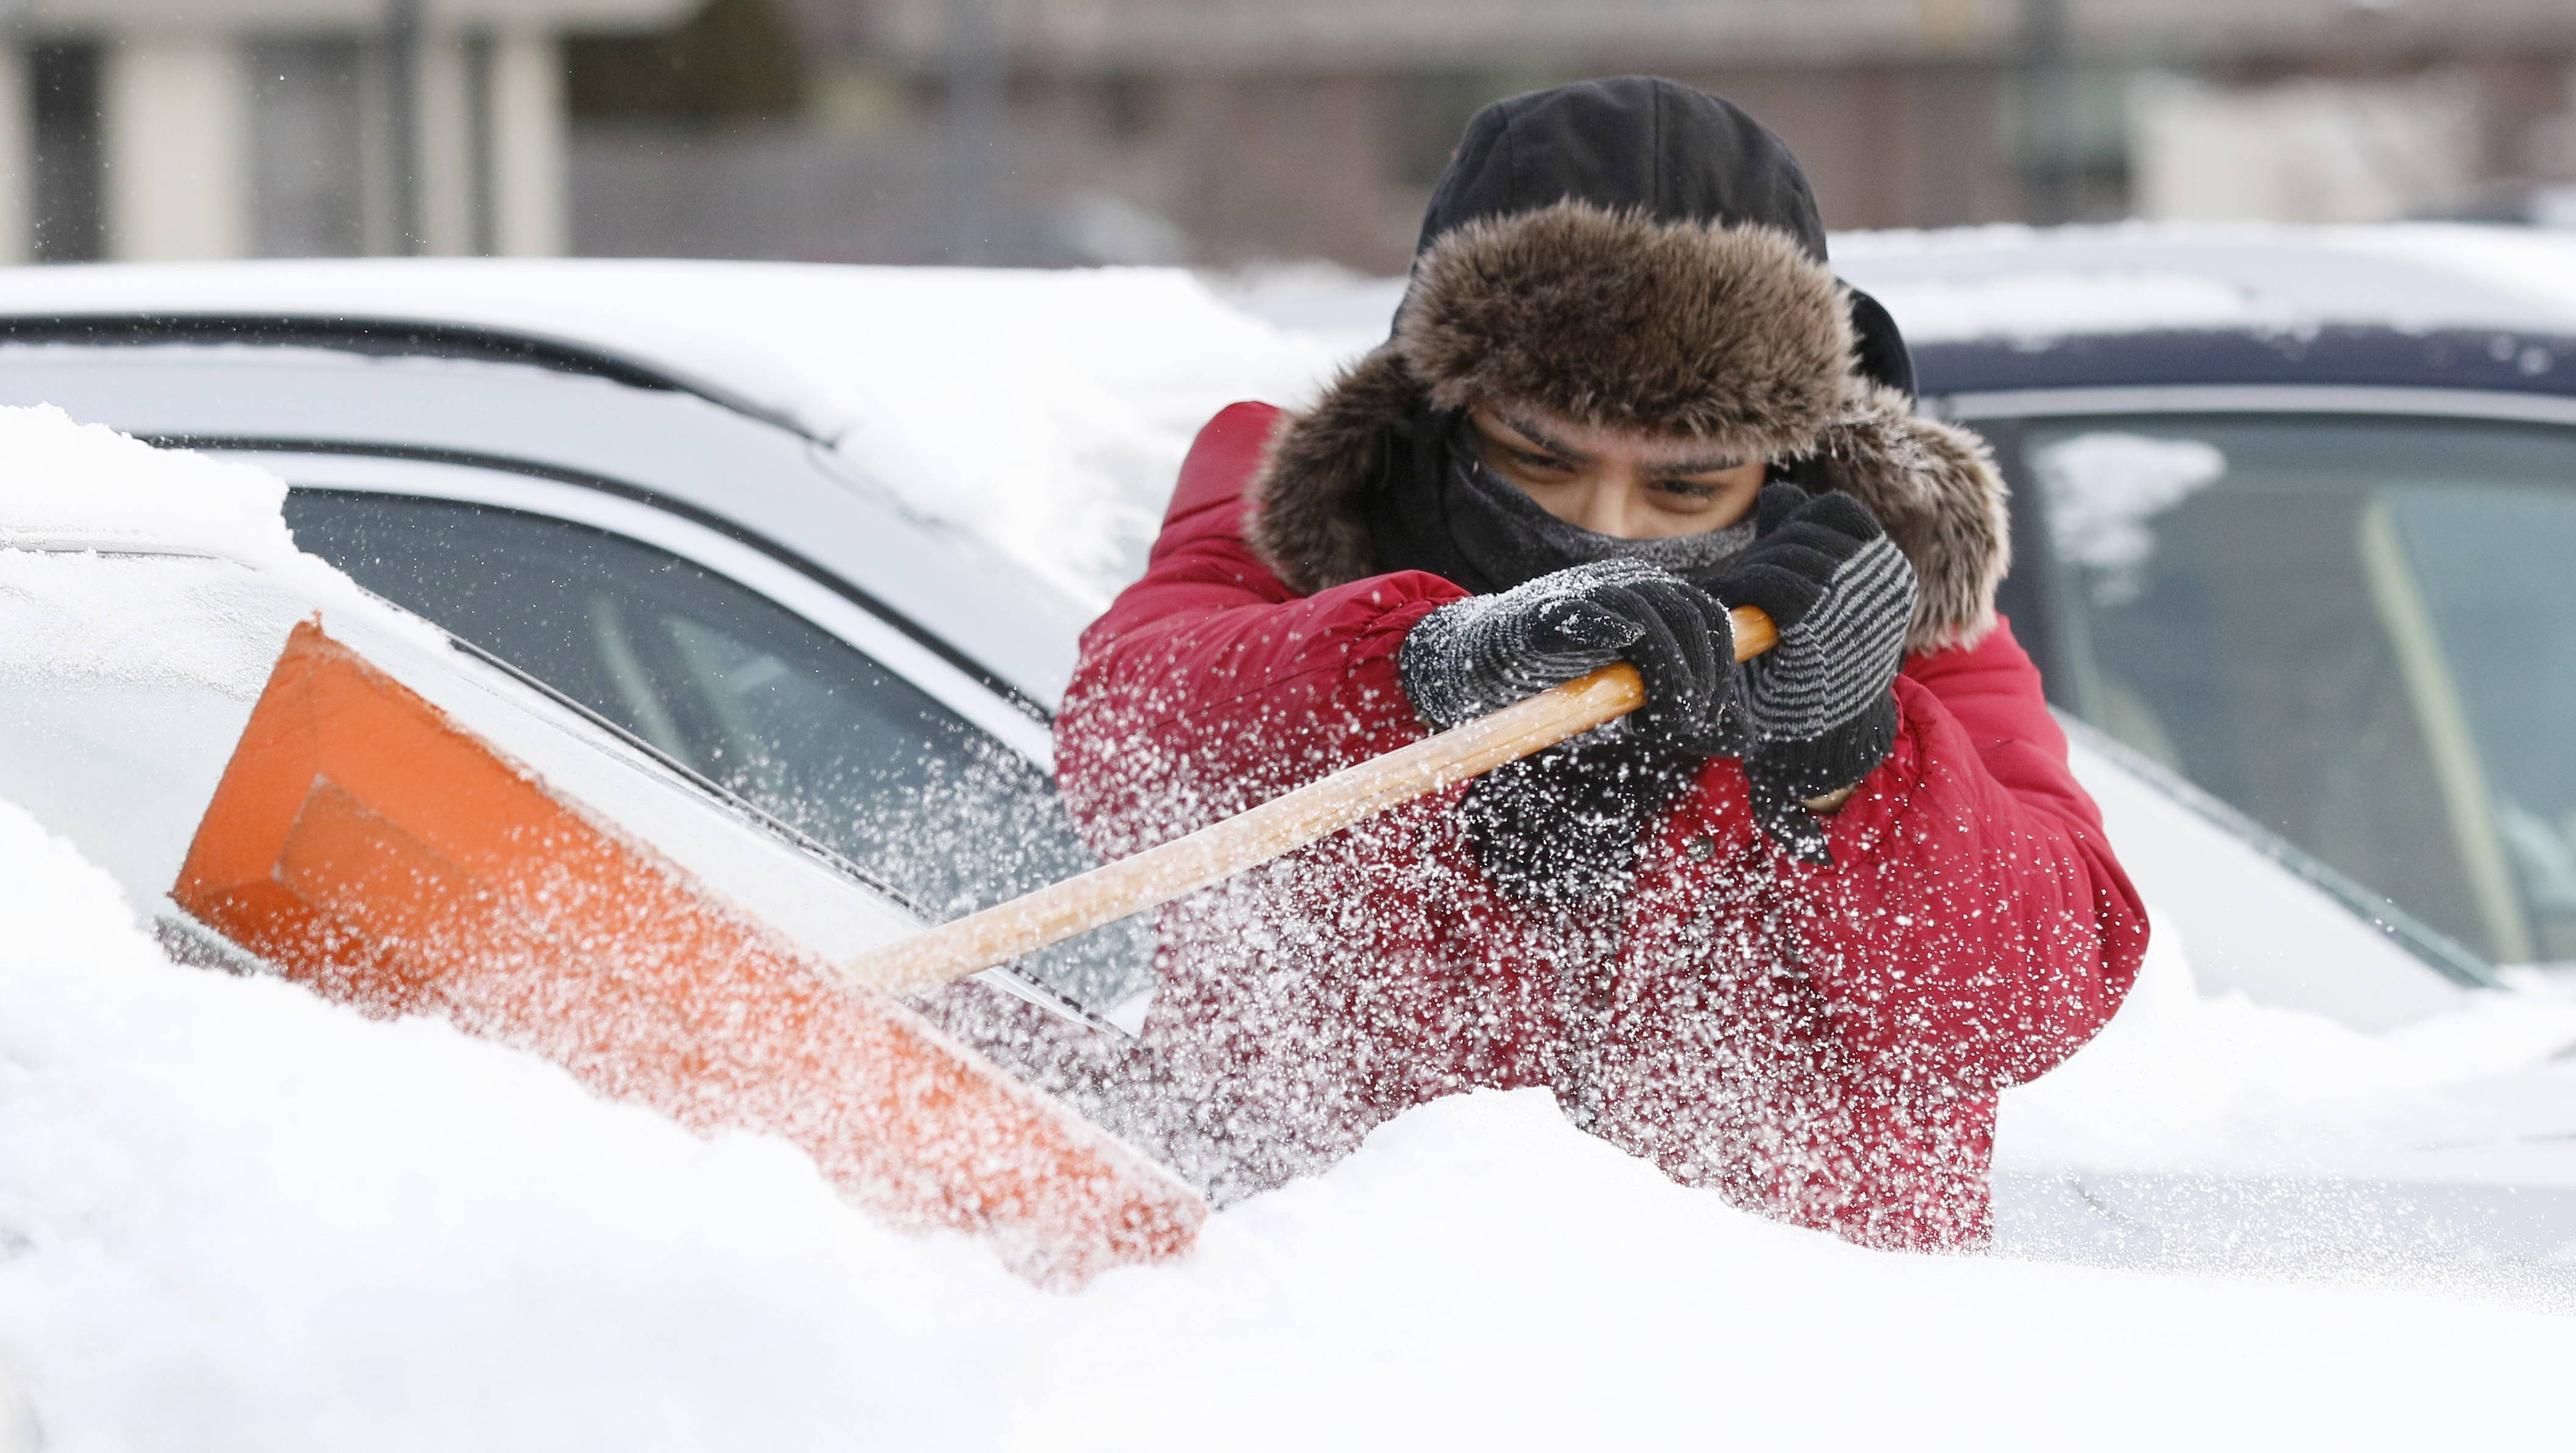 Eduardo Hernandez works to clear snow off cars at McGrath Lexus of Westmont.